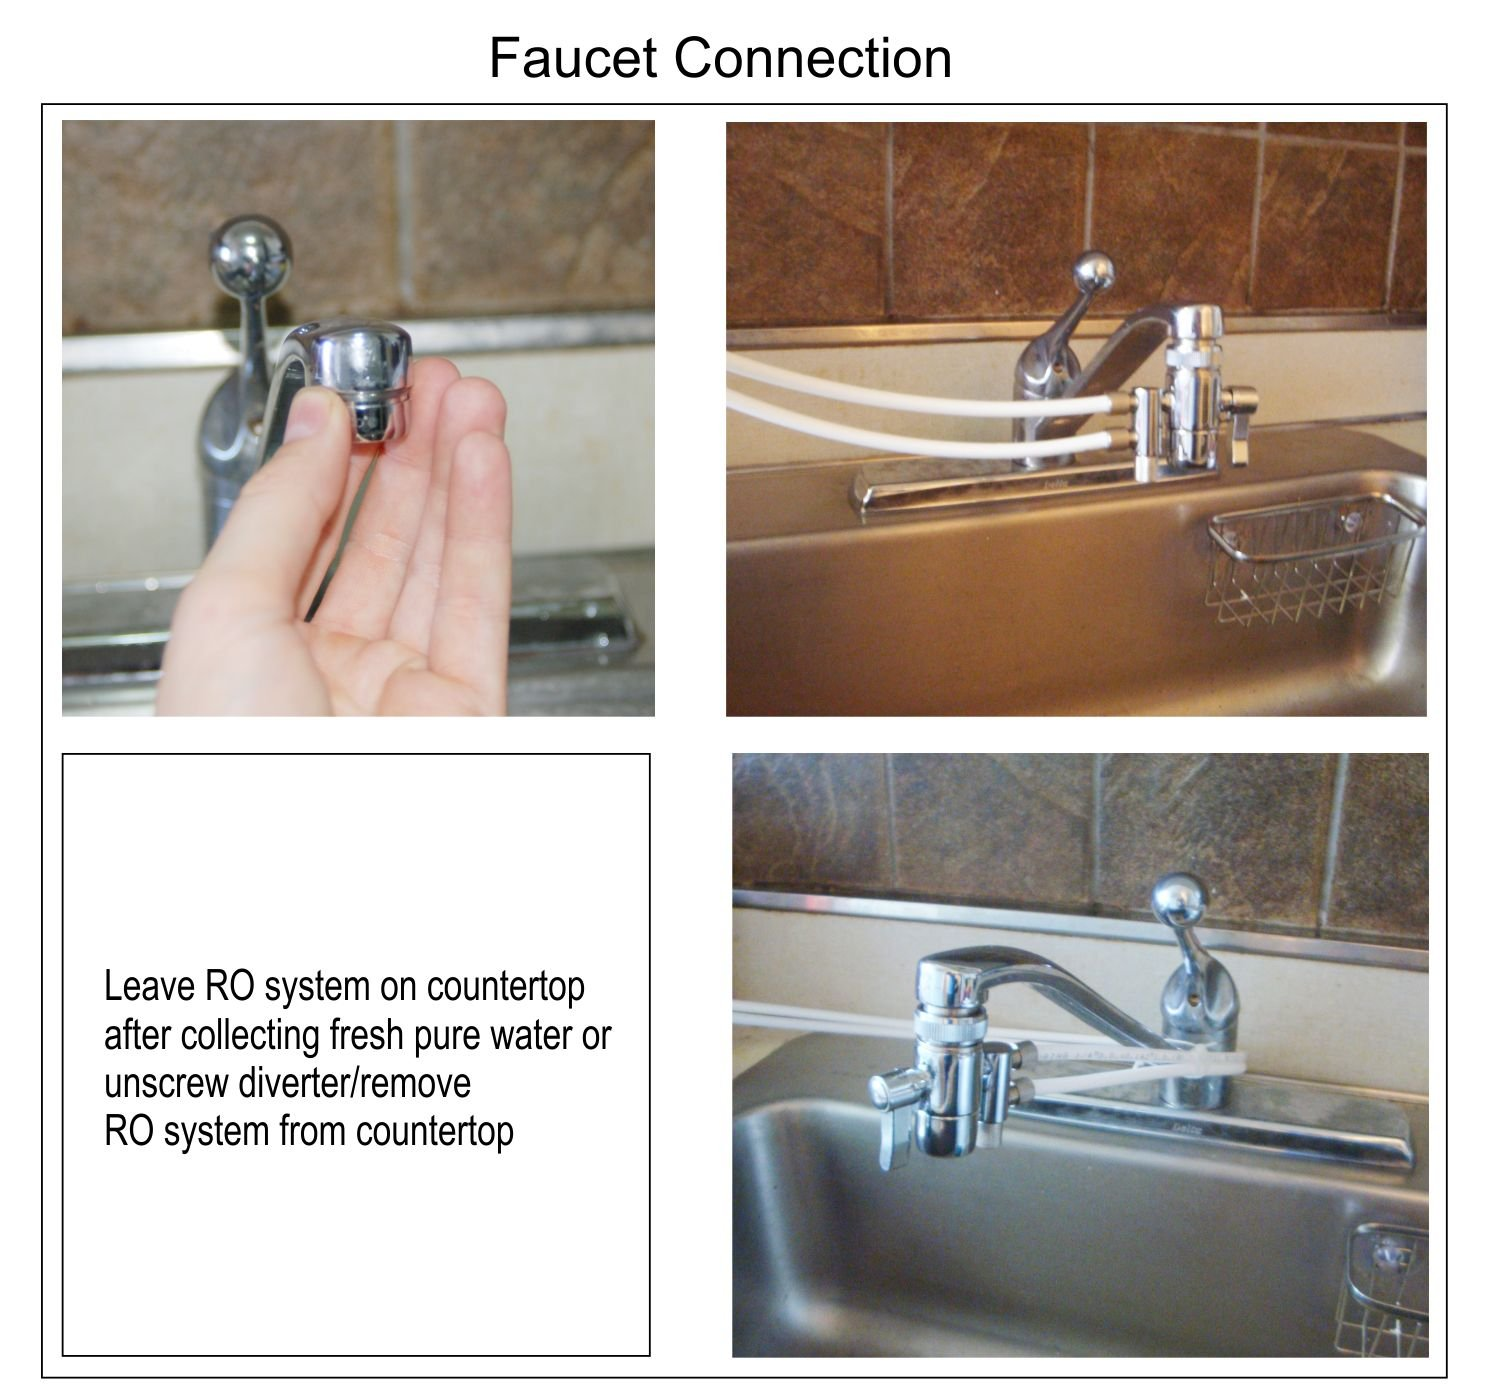 in faq water upgrades with wine air for faucets filter antique non aw cd reverse alone apec system color designer osmosis faucet gap drinking ro